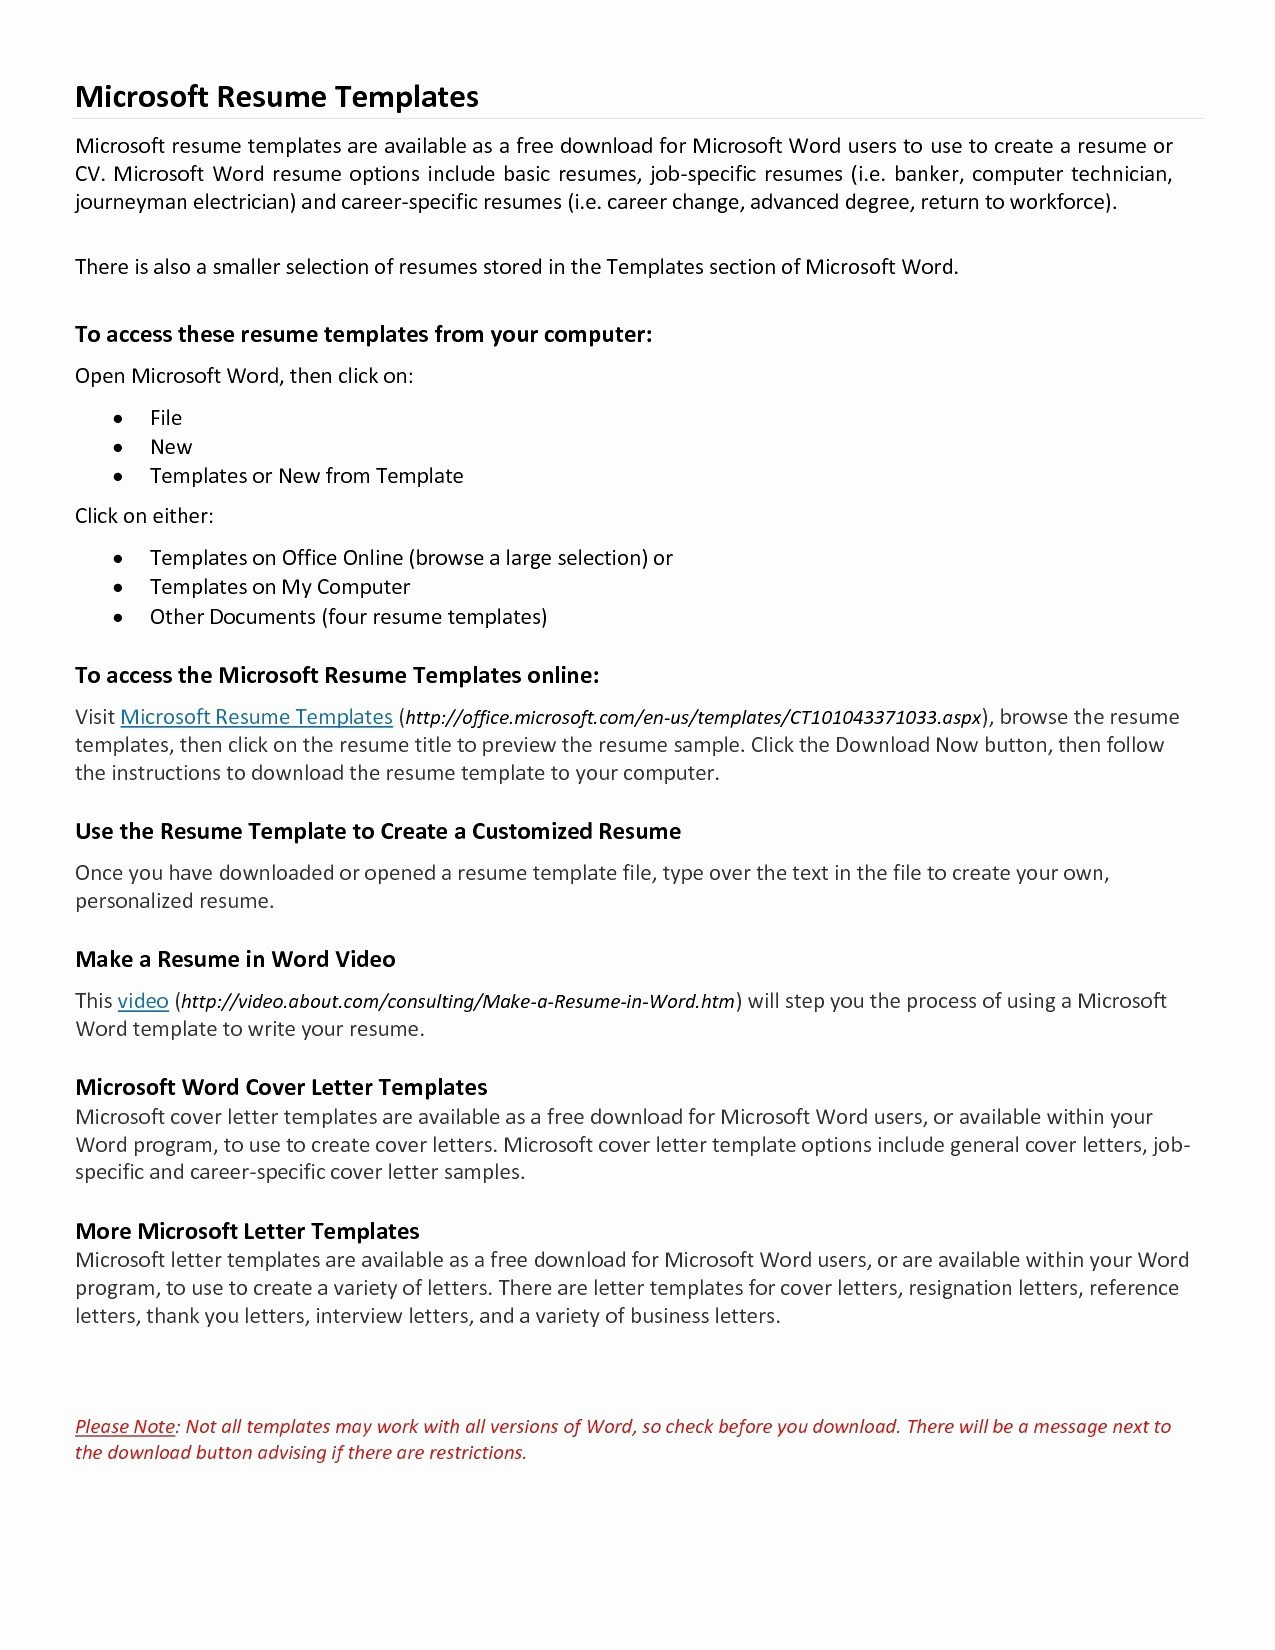 Free Printable Cover Letter Templates Beautiful Download Microsoft - Free Printable Resume Templates Microsoft Word